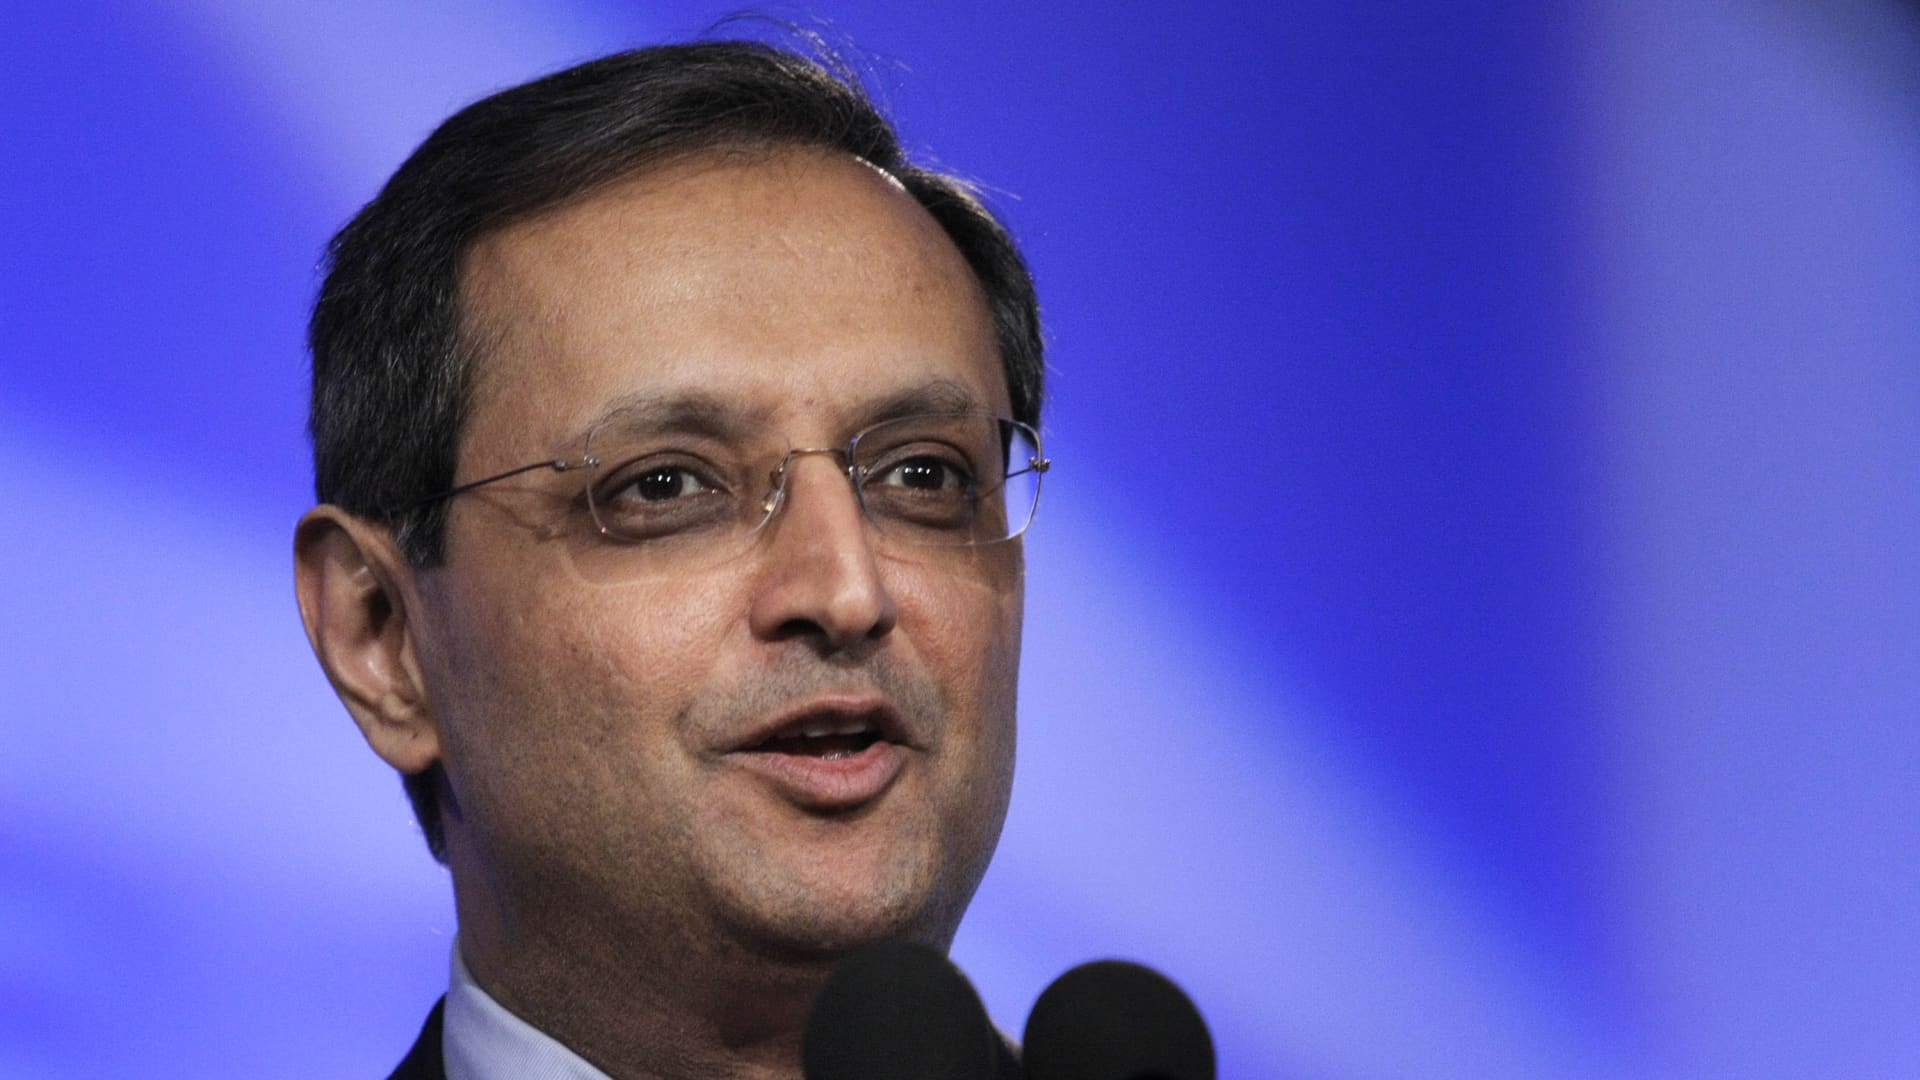 Vikram Pandit, former-CEO of Citigroup speaking in June 15, 2009 in Detroit, Michigan.